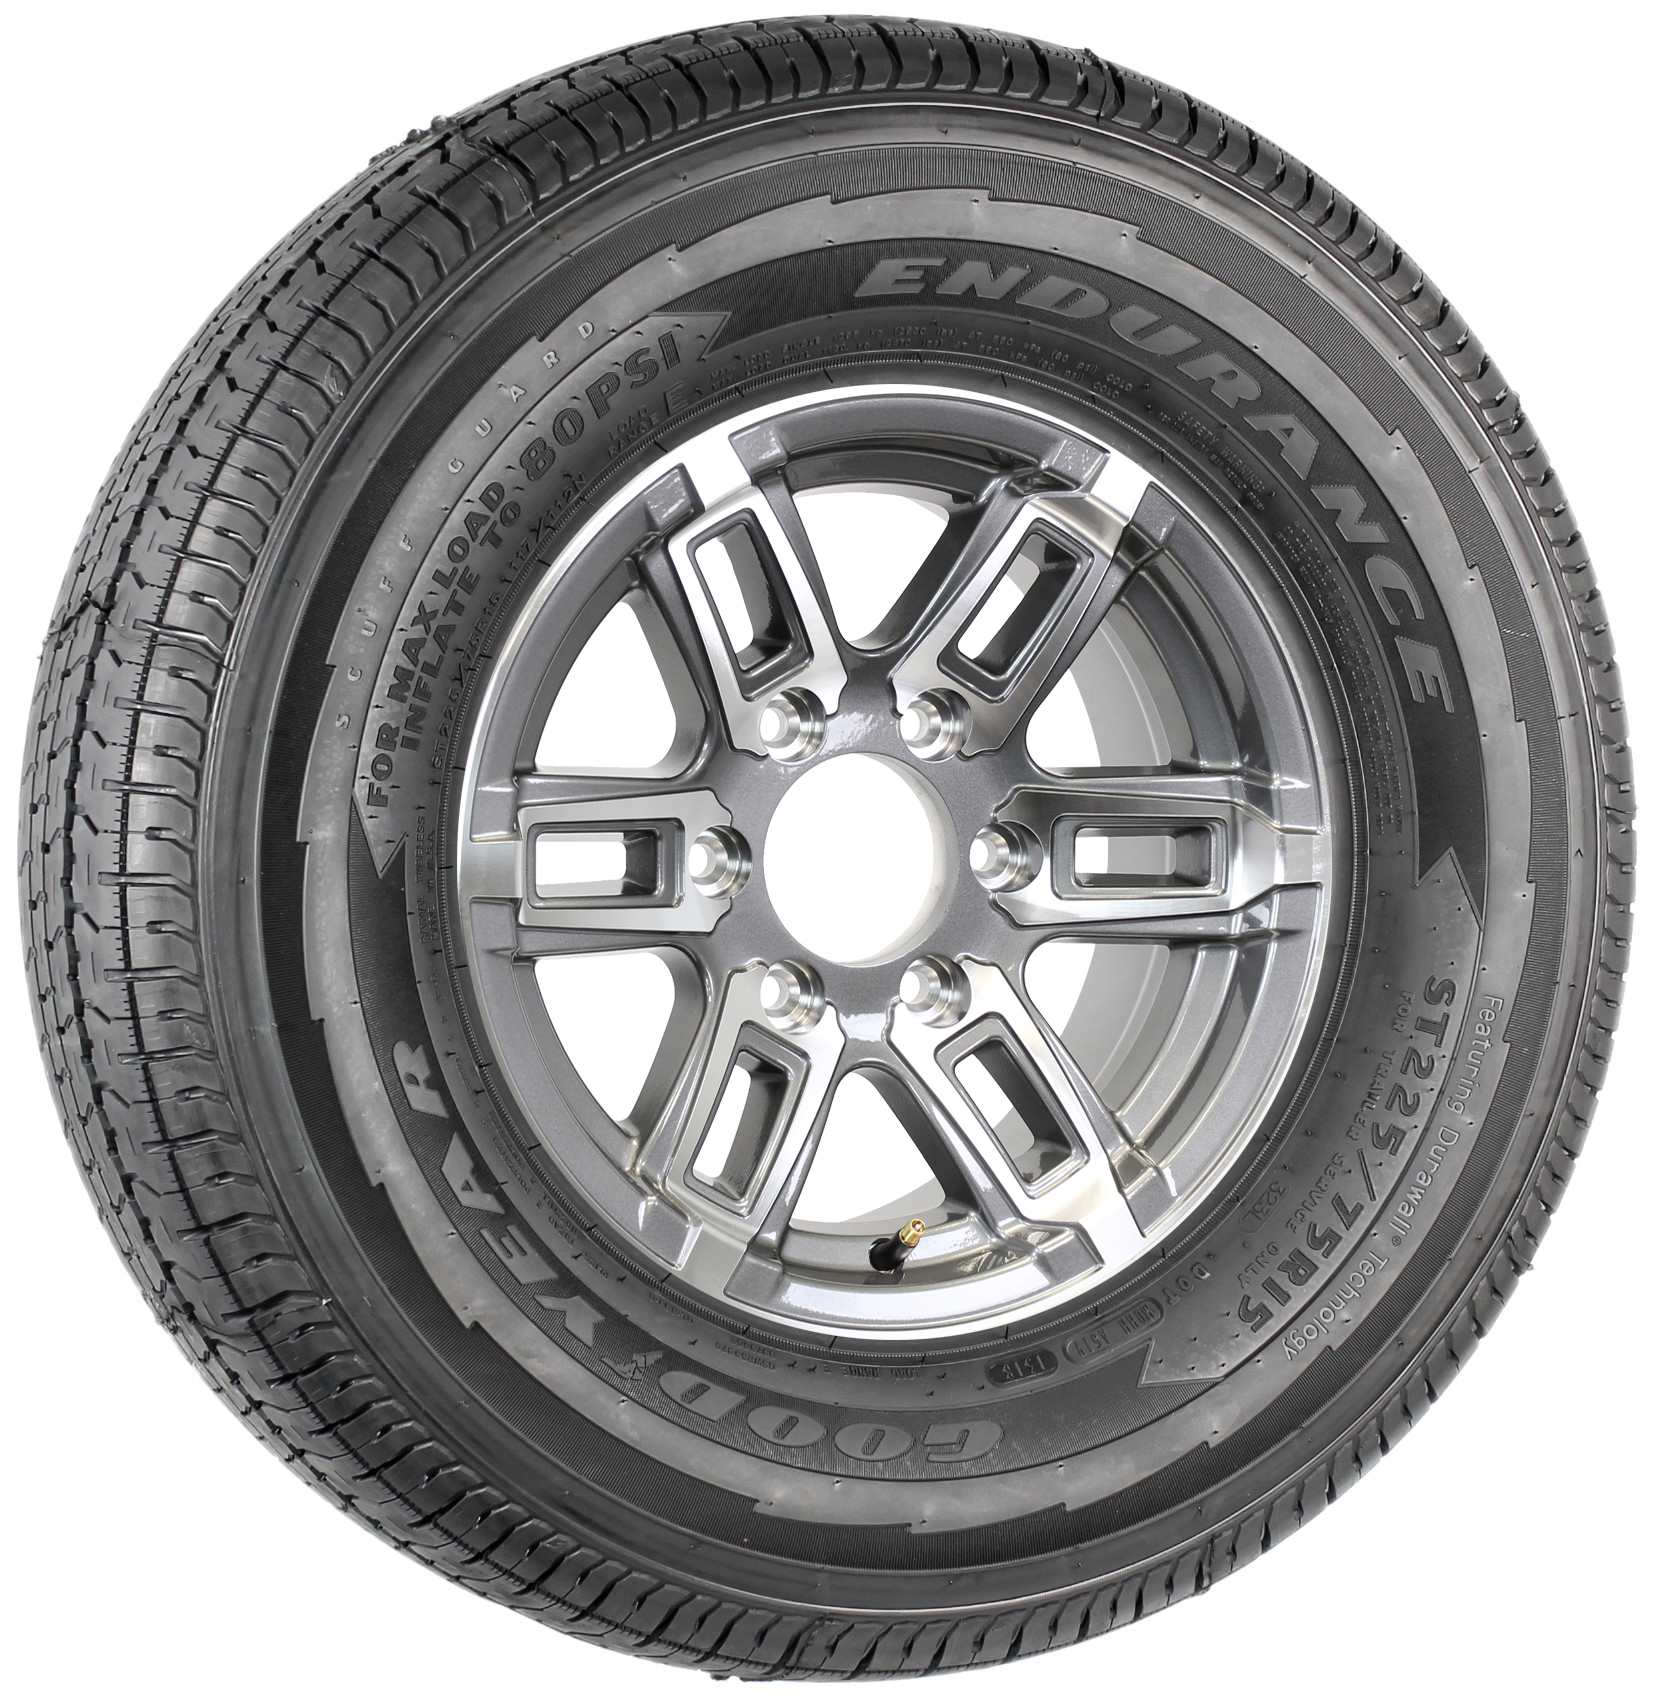 "Goodyear Endurance ST225/75R15 LRE Radial Tire on T06 15"" 6-Lug Gun Metal Aluminum Wheel Assembly Image"